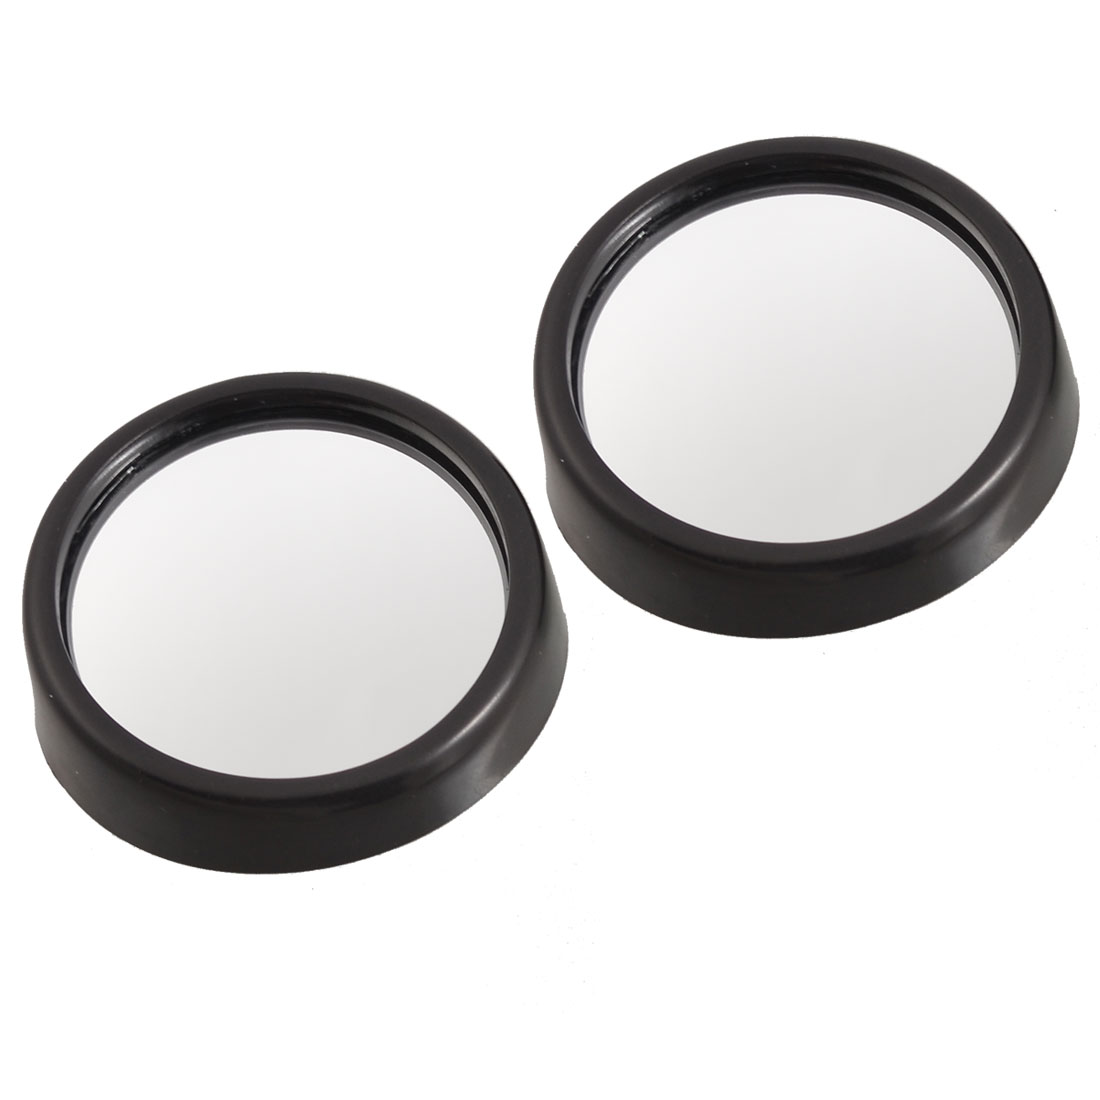 Car Black 45mm Round Wide Angle Rearview Blind Spot Mirror 2 Pcs